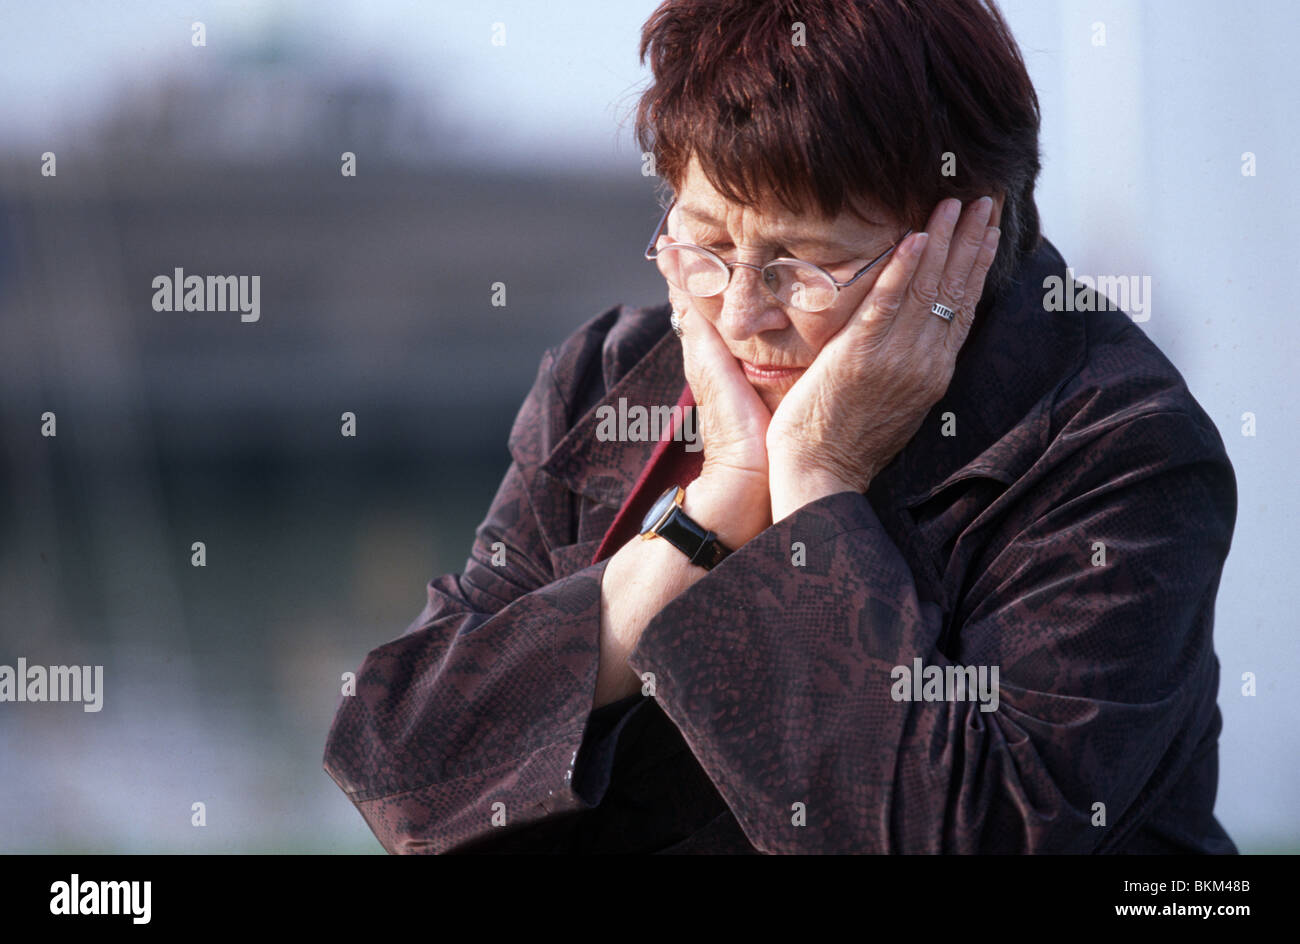 Depressed elderly woman outside contemplating in pensive mood with head in hands, looking down. - Stock Image